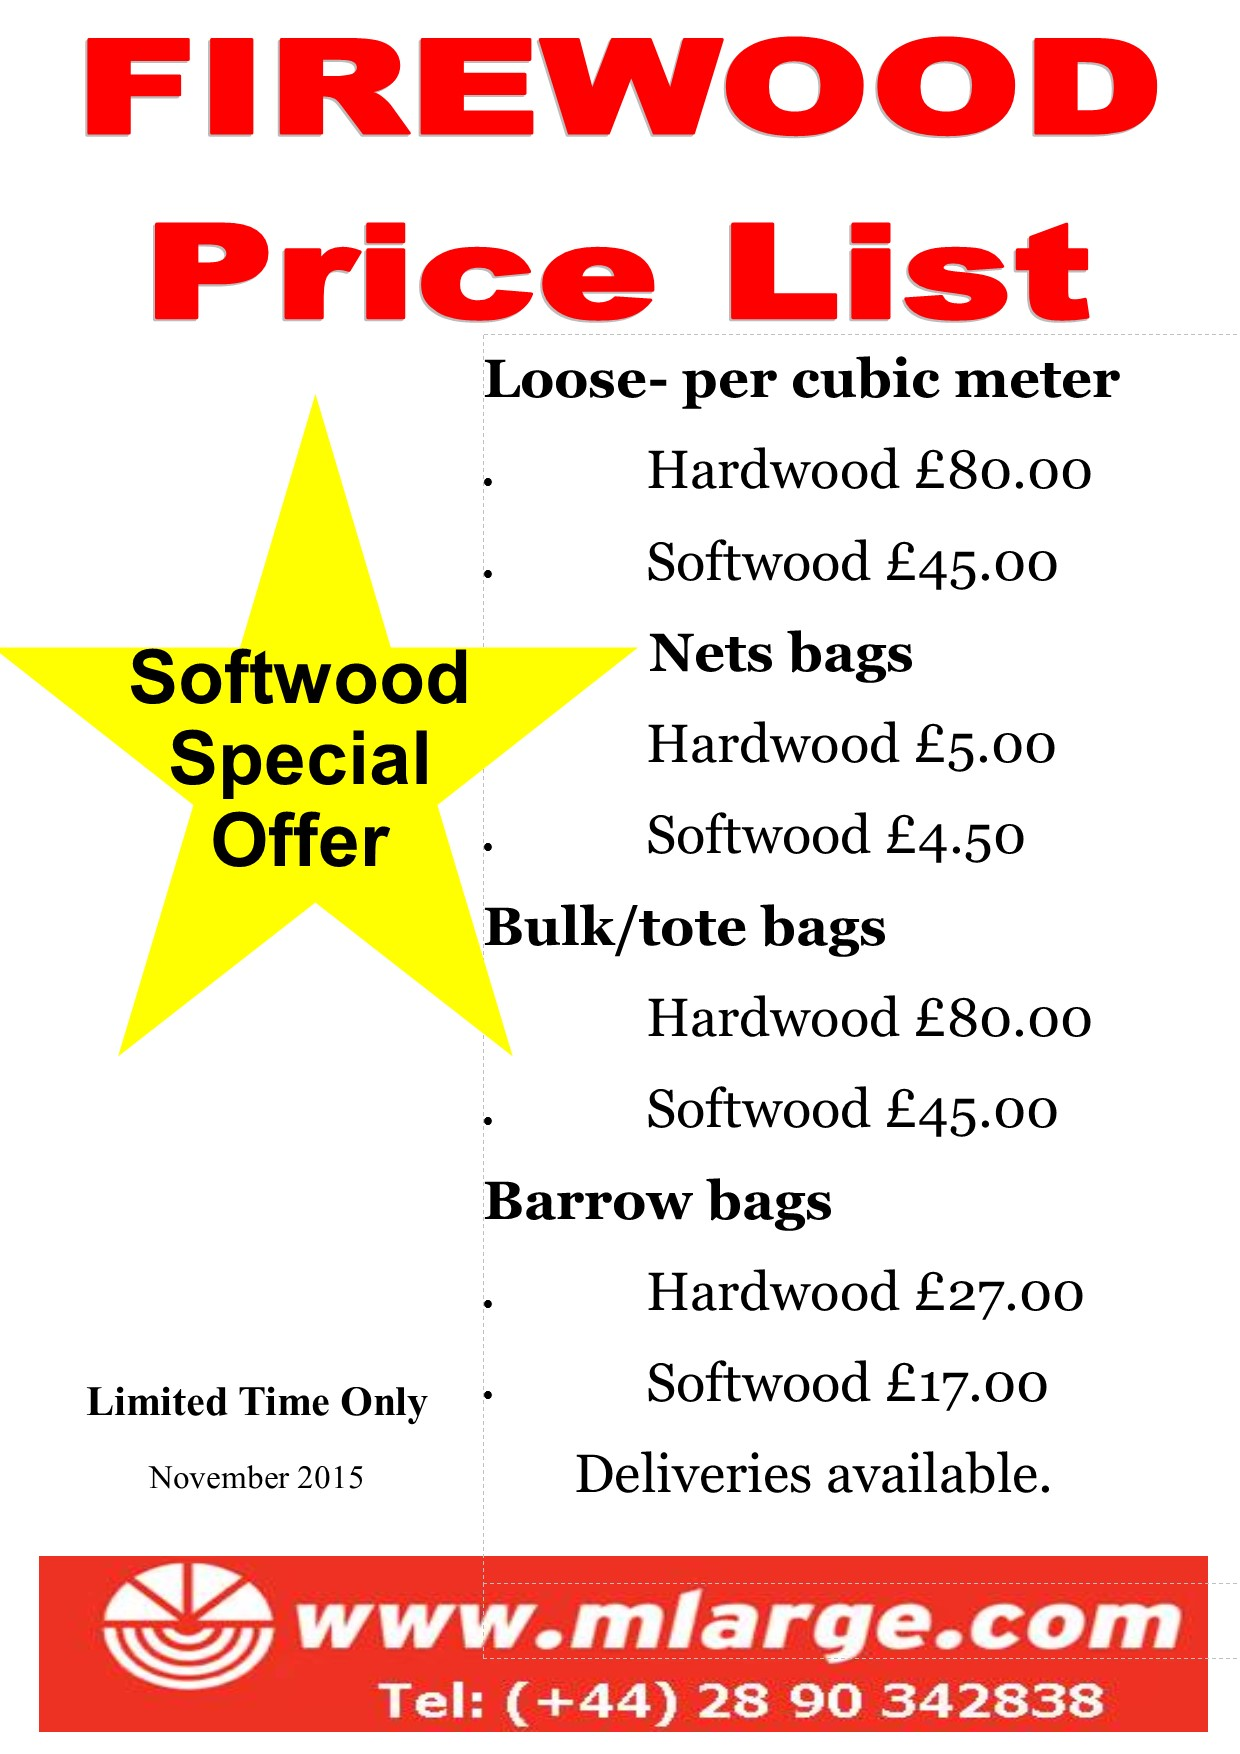 November 2015 firewood price list #2